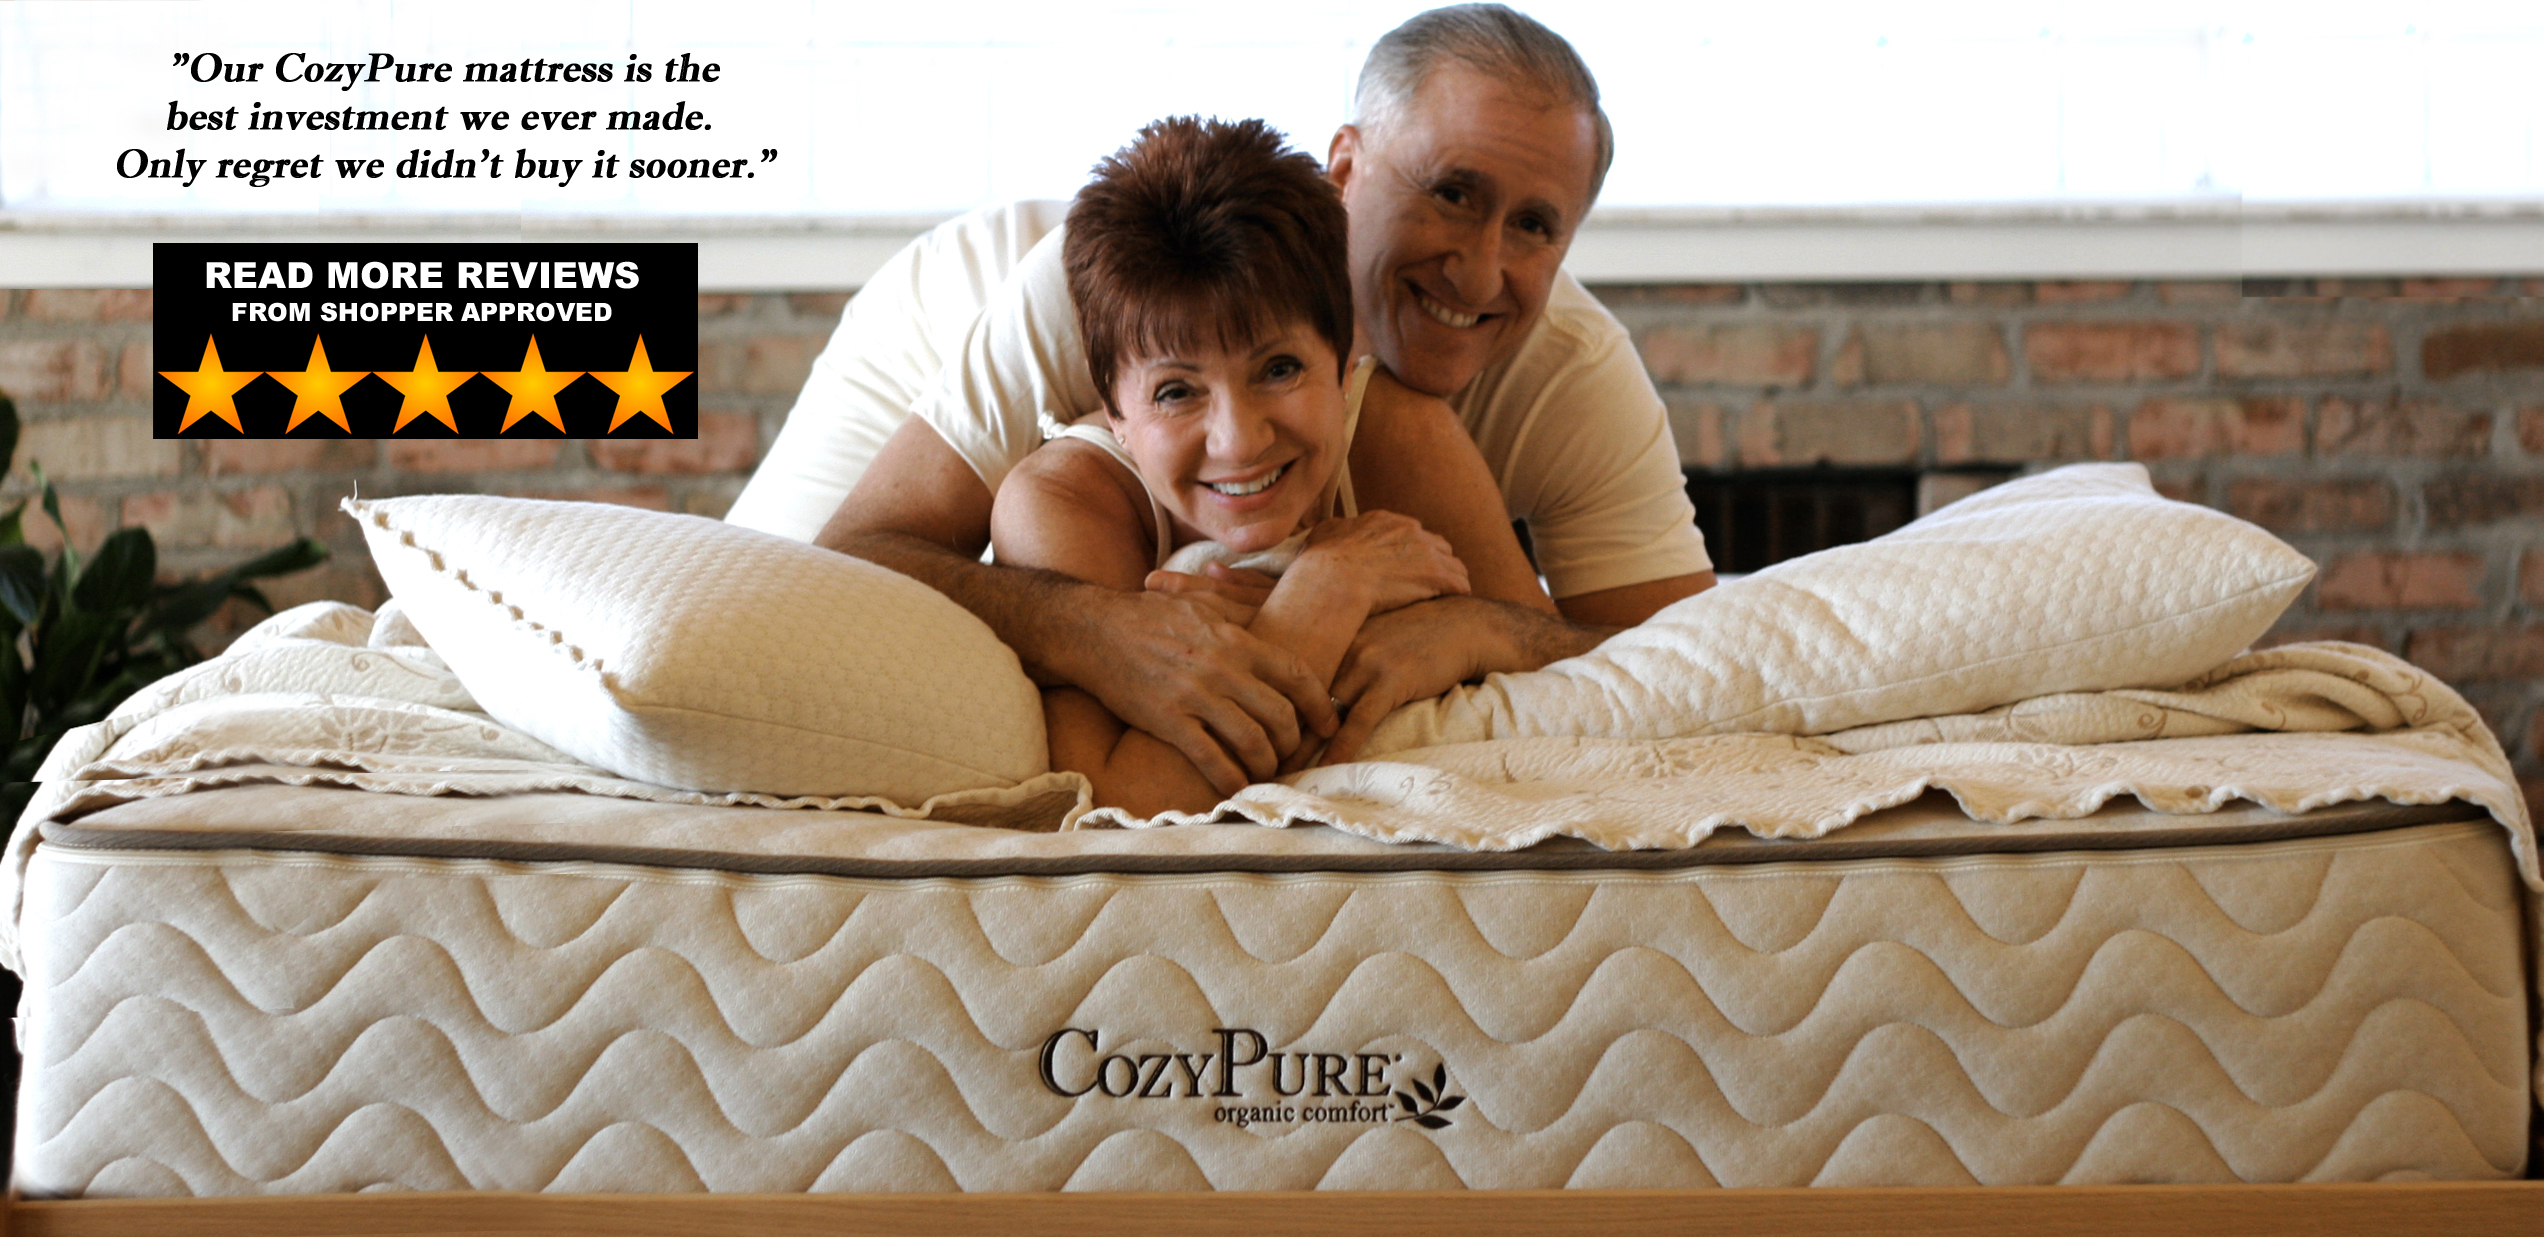 CozyPure organic mattress review